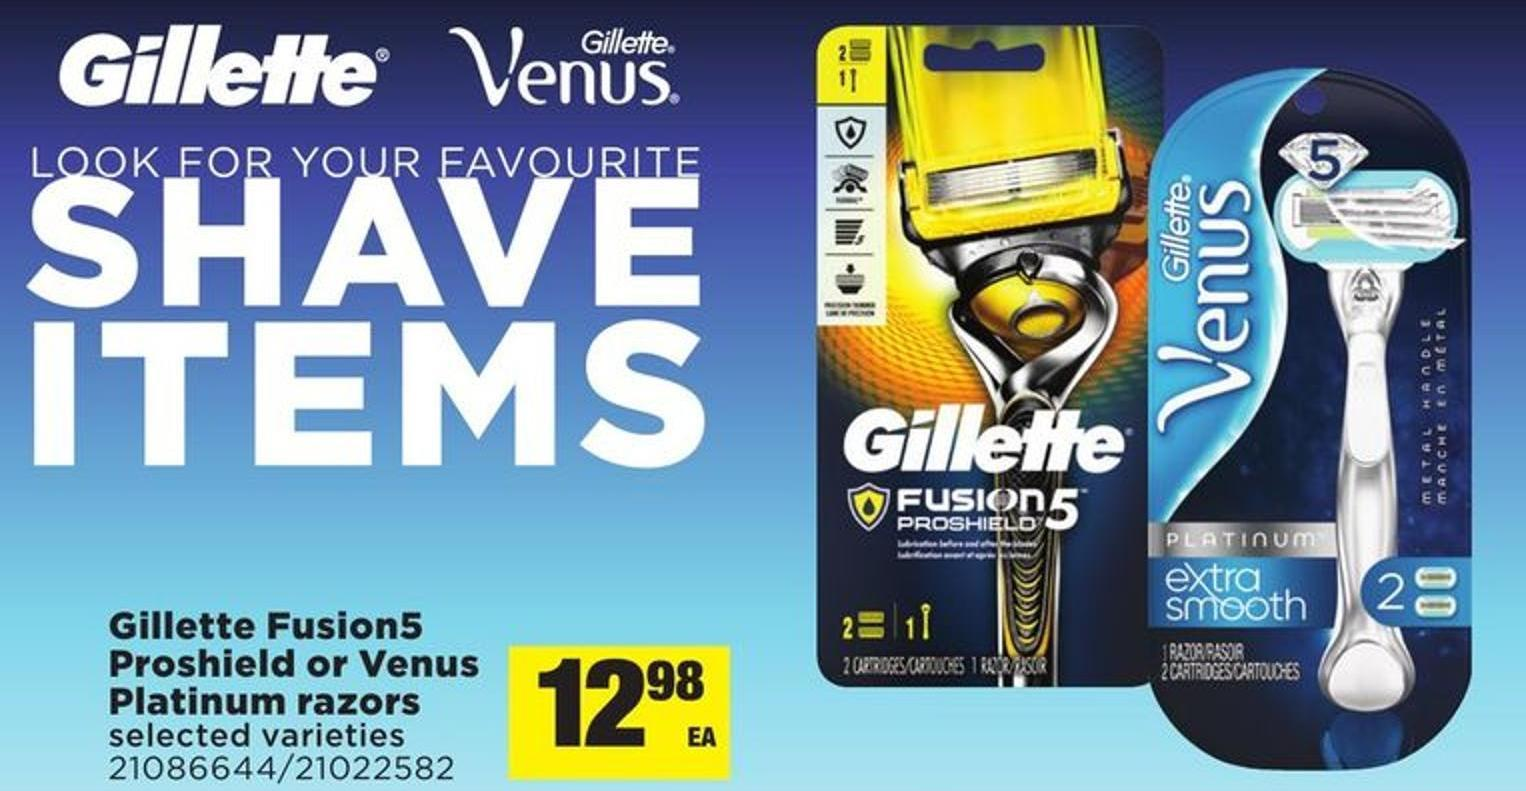 Gillette Fusion5 Proshield Or Venus Platinum Razors